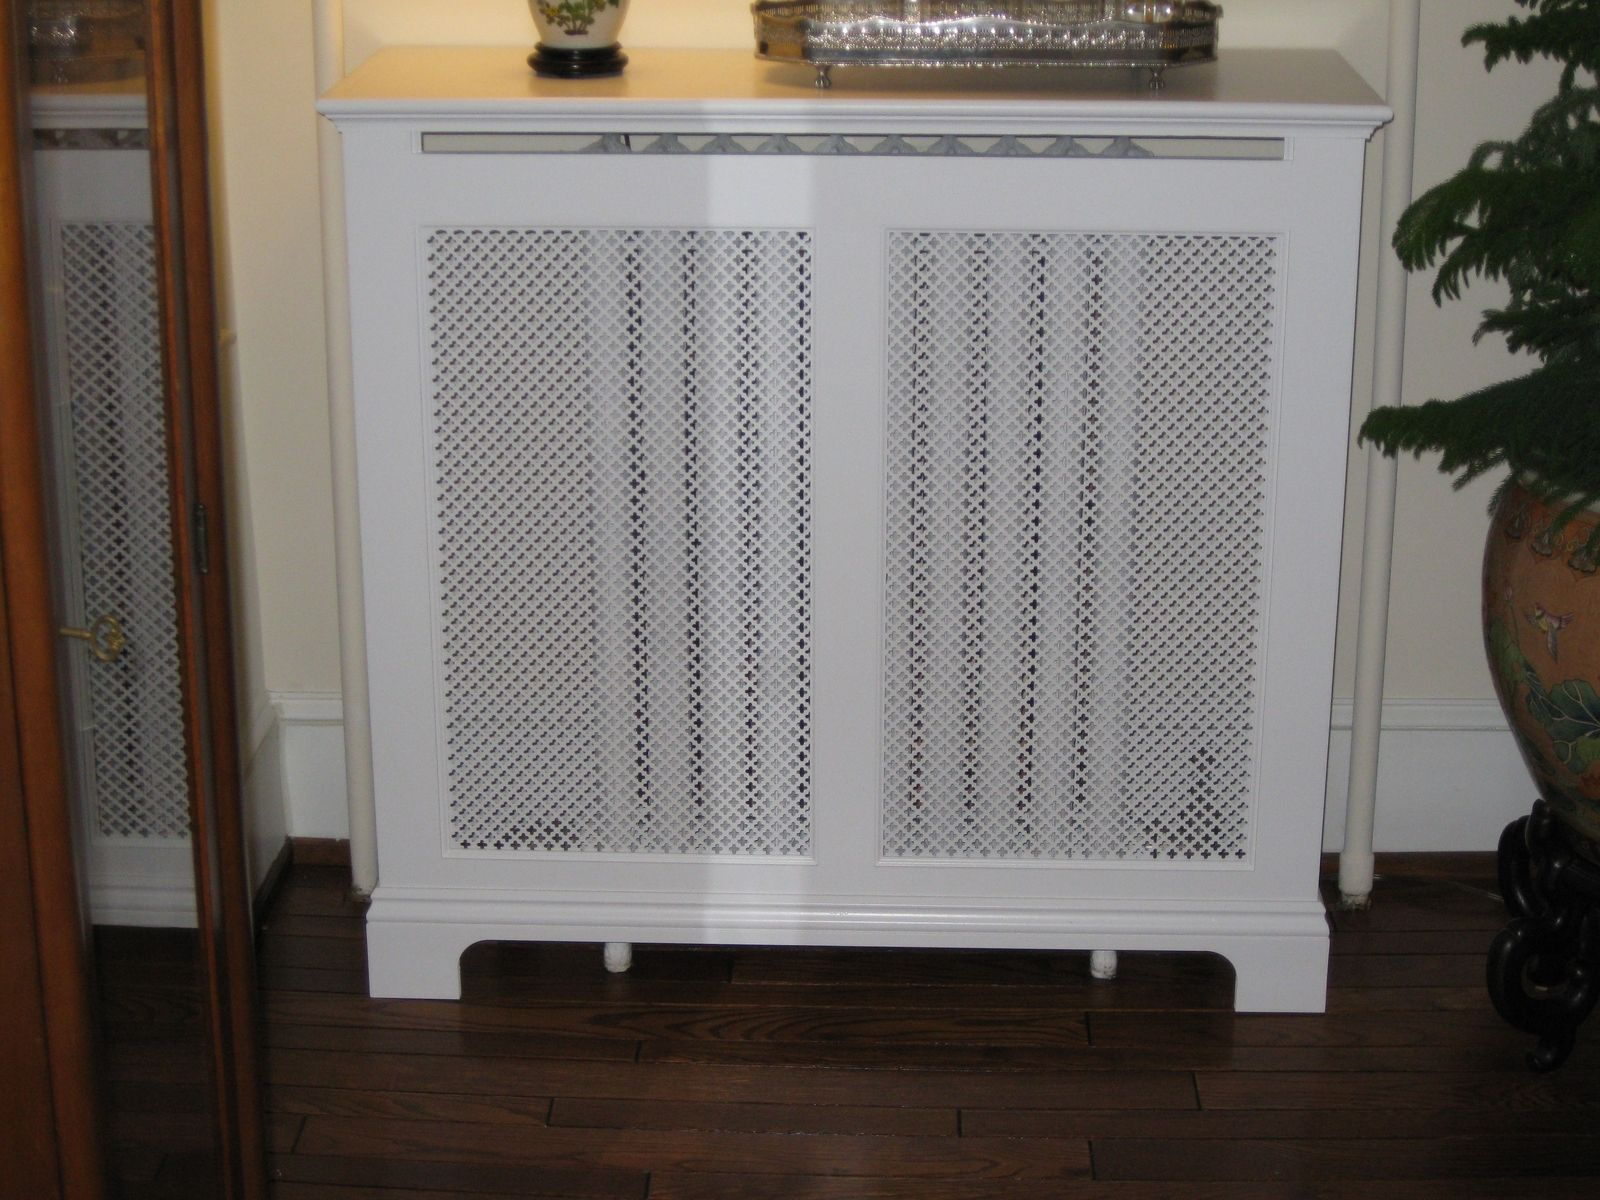 Radiator under kitchen cabinet - Decorative Radiator Cover